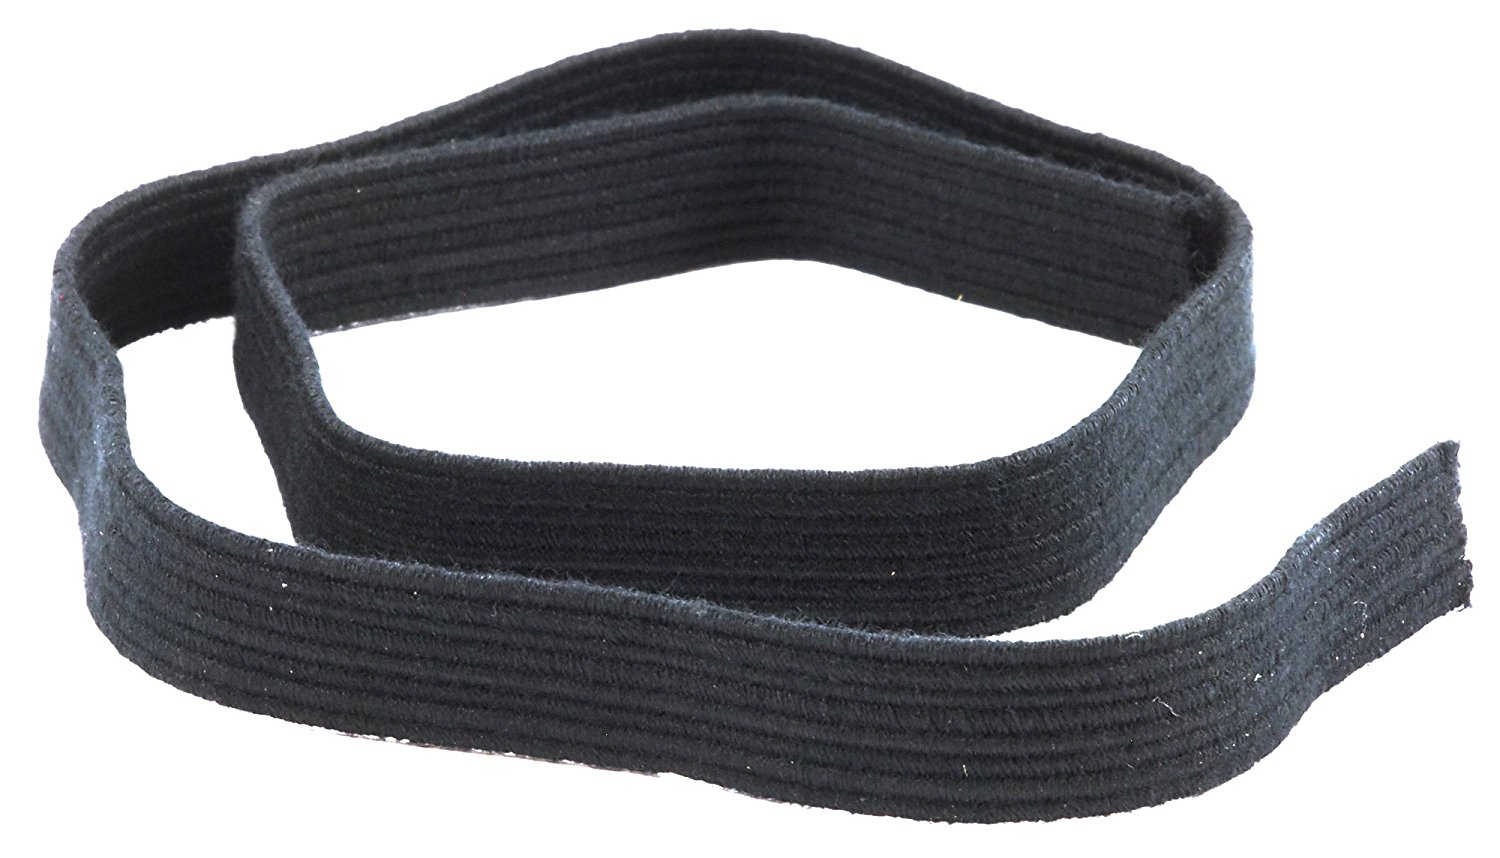 Forney 55302 Headband Replacement for Goggles, Elastic